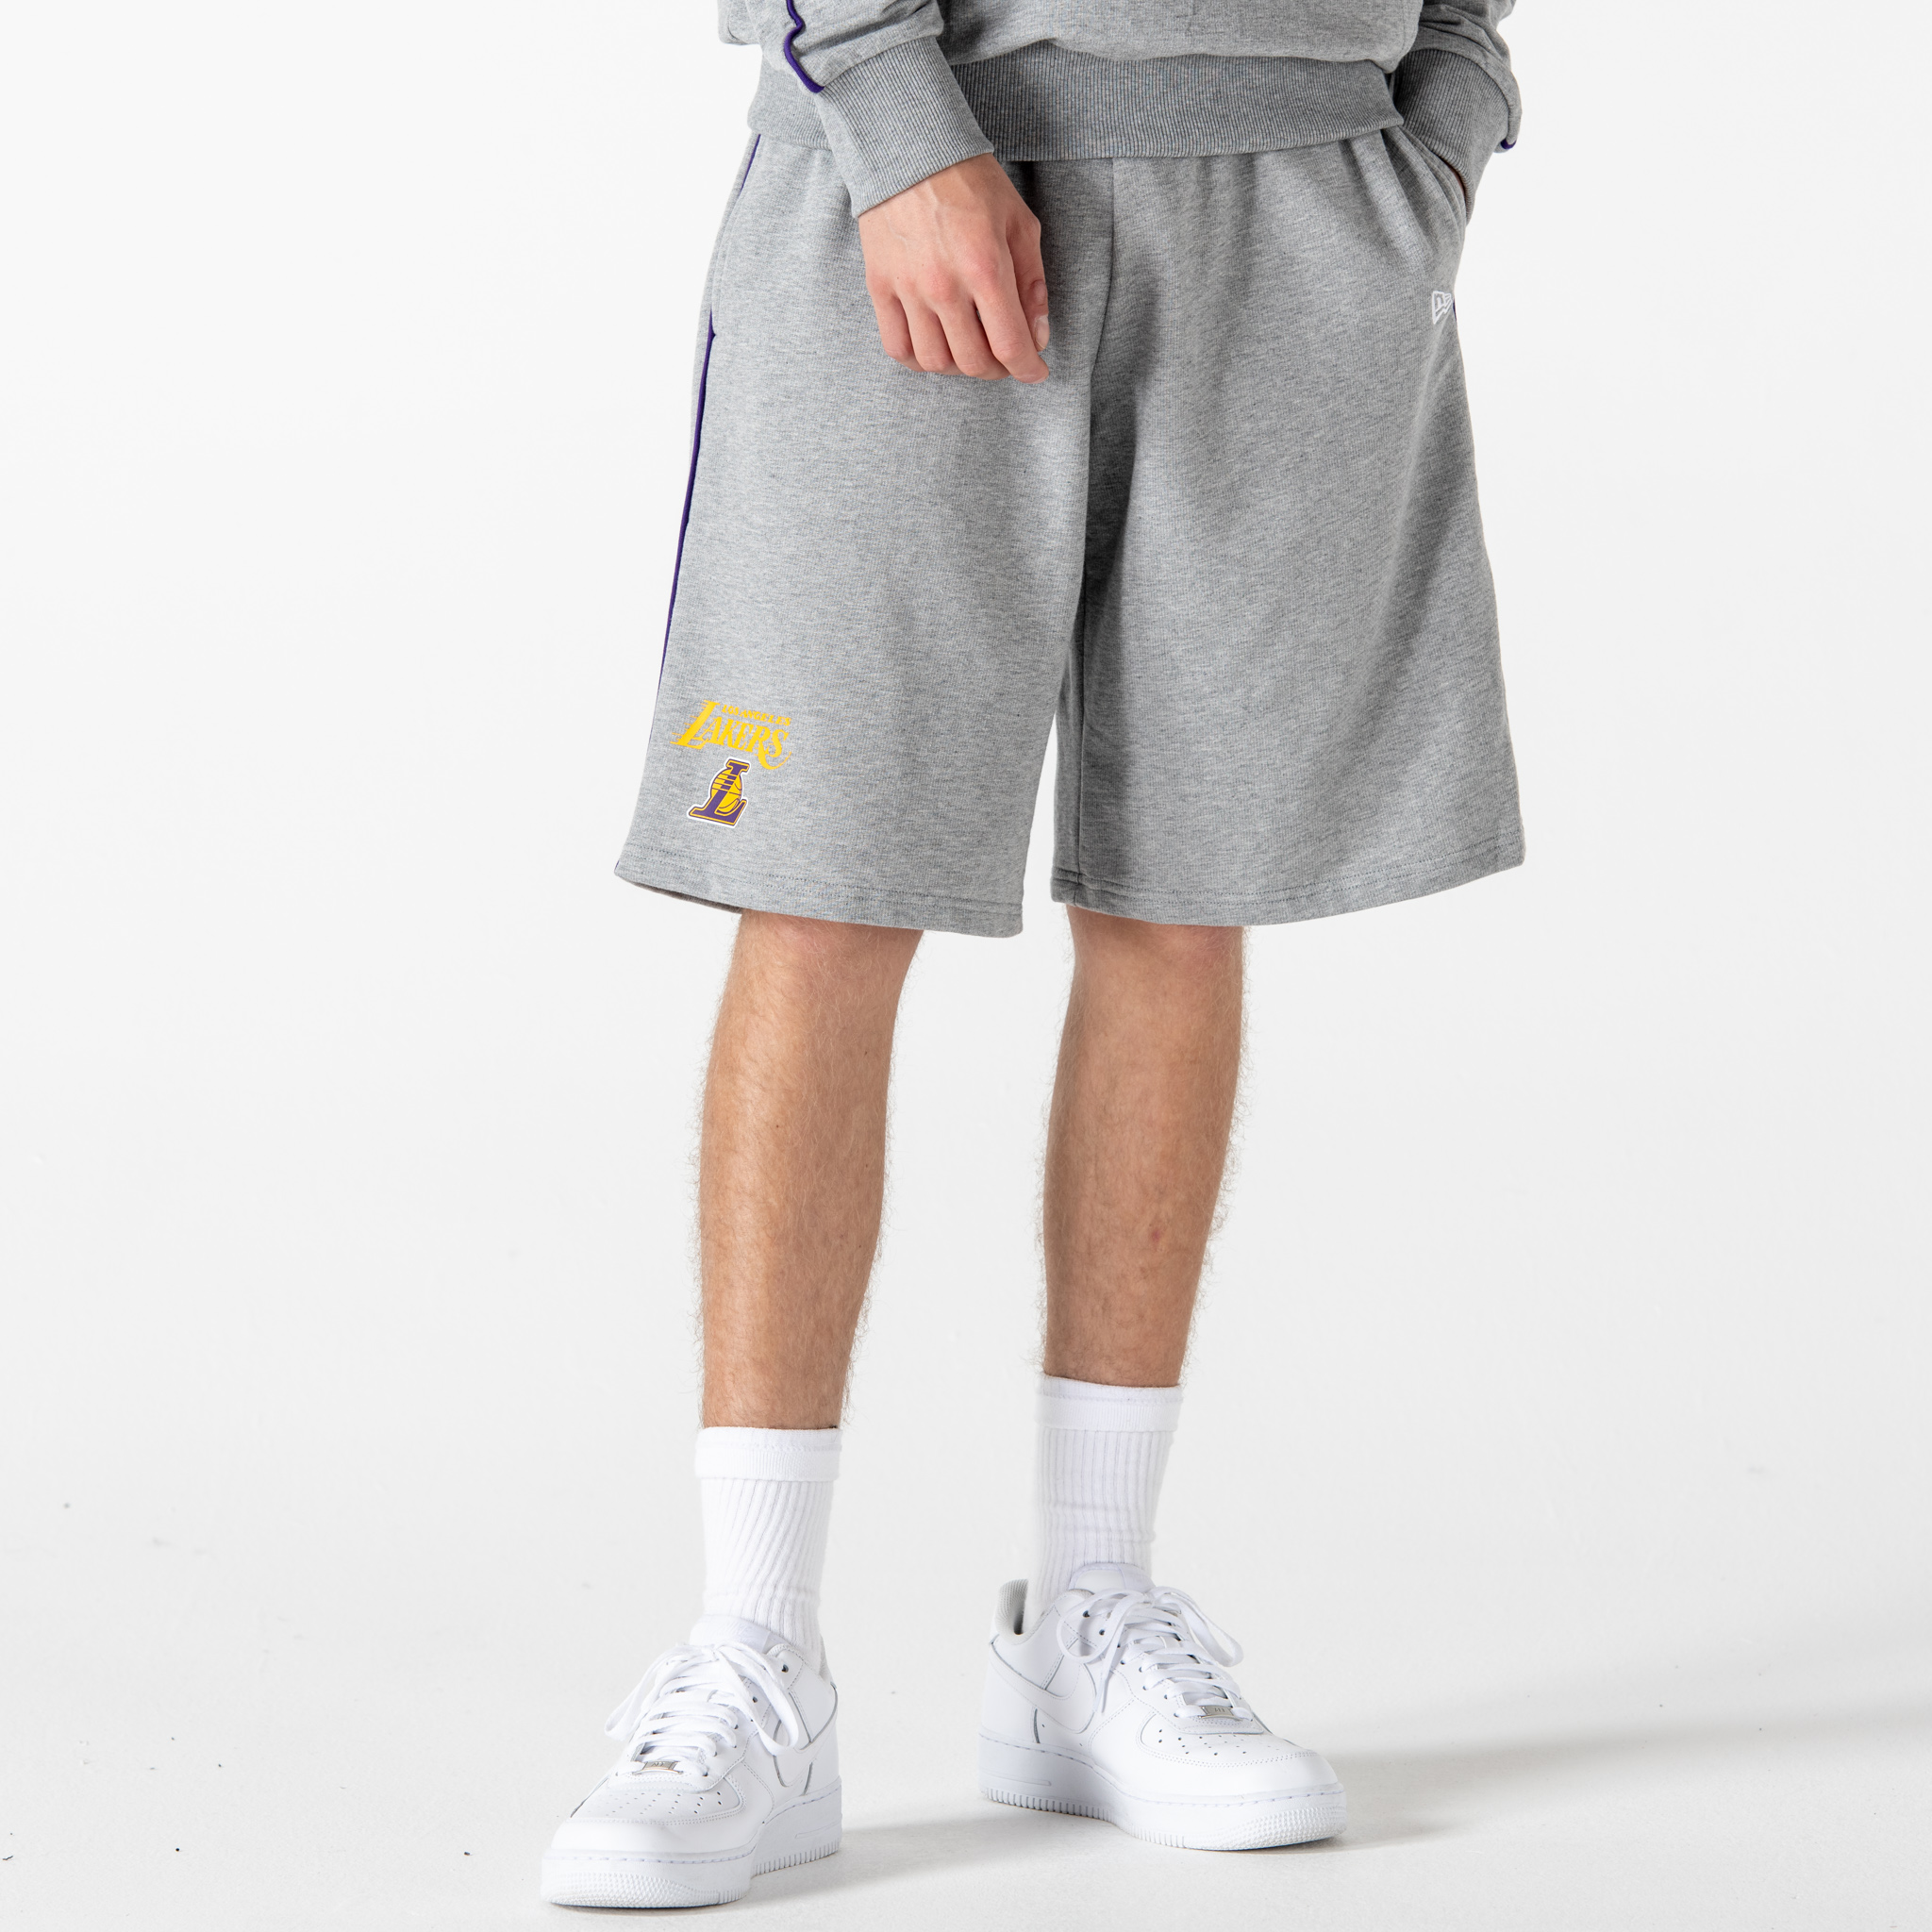 Shorts Los Angeles Lakers Piping Detail